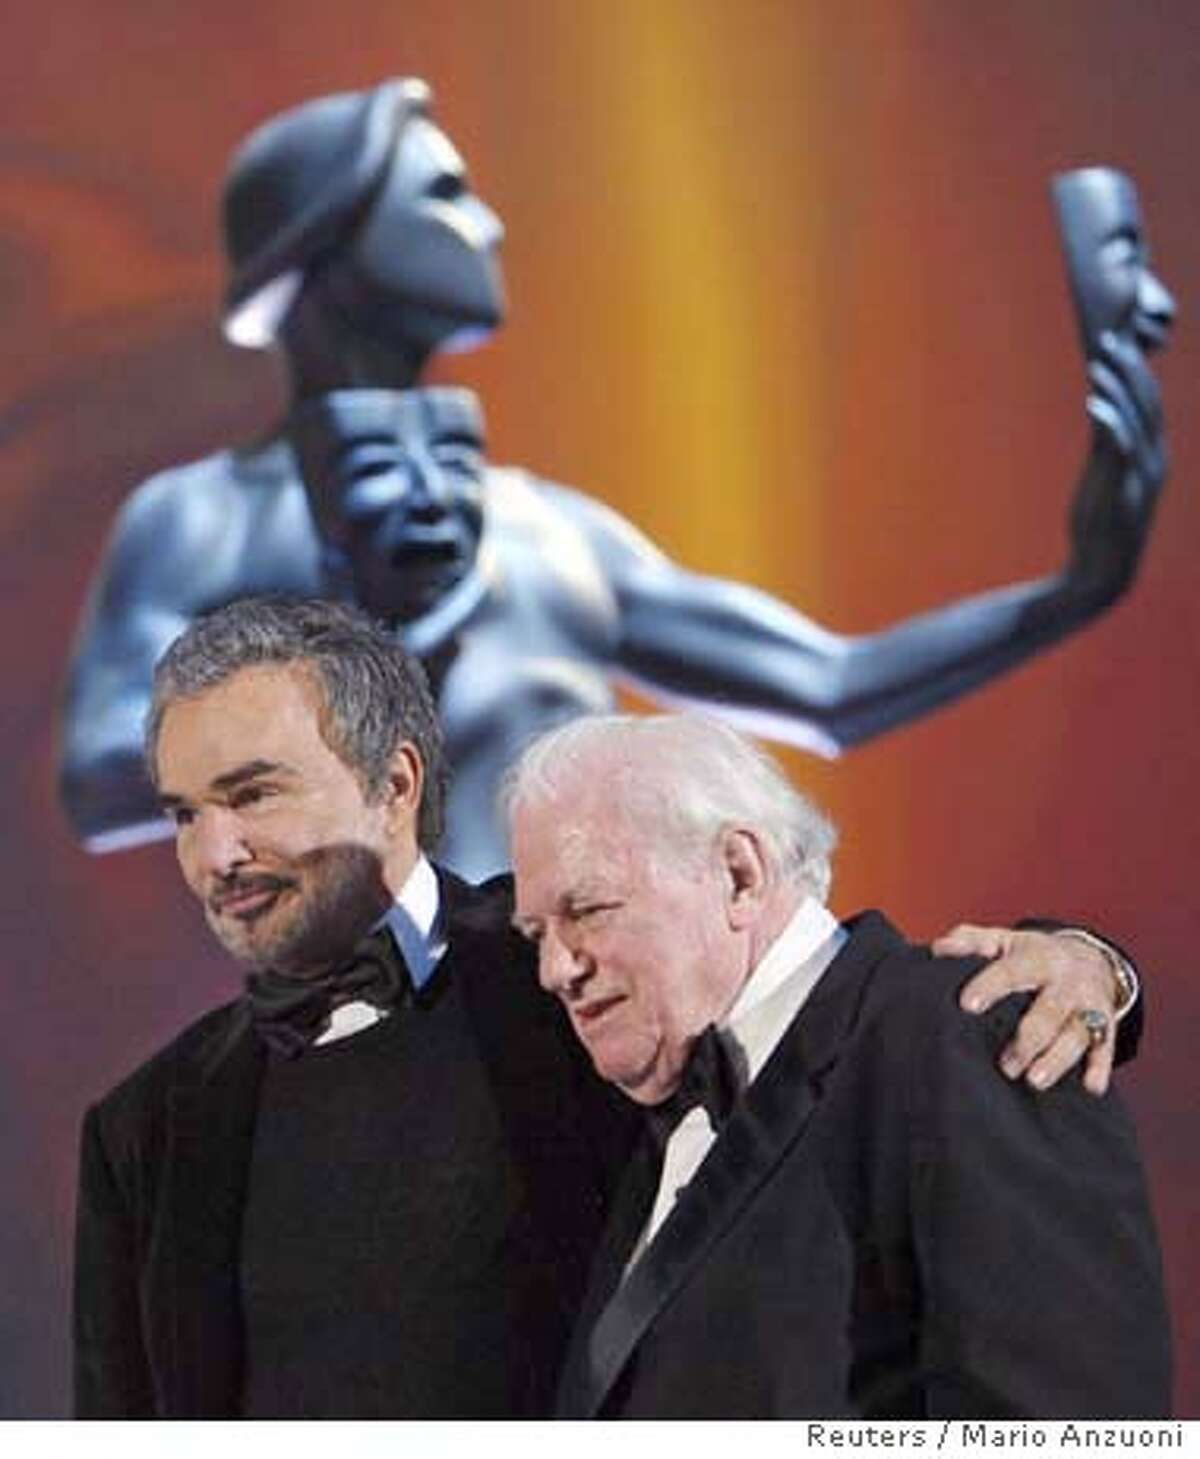 Actor Charles Durning (R) walks off the stage with Burt Reynolds after accepting the Lifetime Achievement award at the 14th annual Screen Actors Guild Awards in Los Angeles January 27, 2008. REUTERS/Mario Anzuoni (UNITED STATES) 0